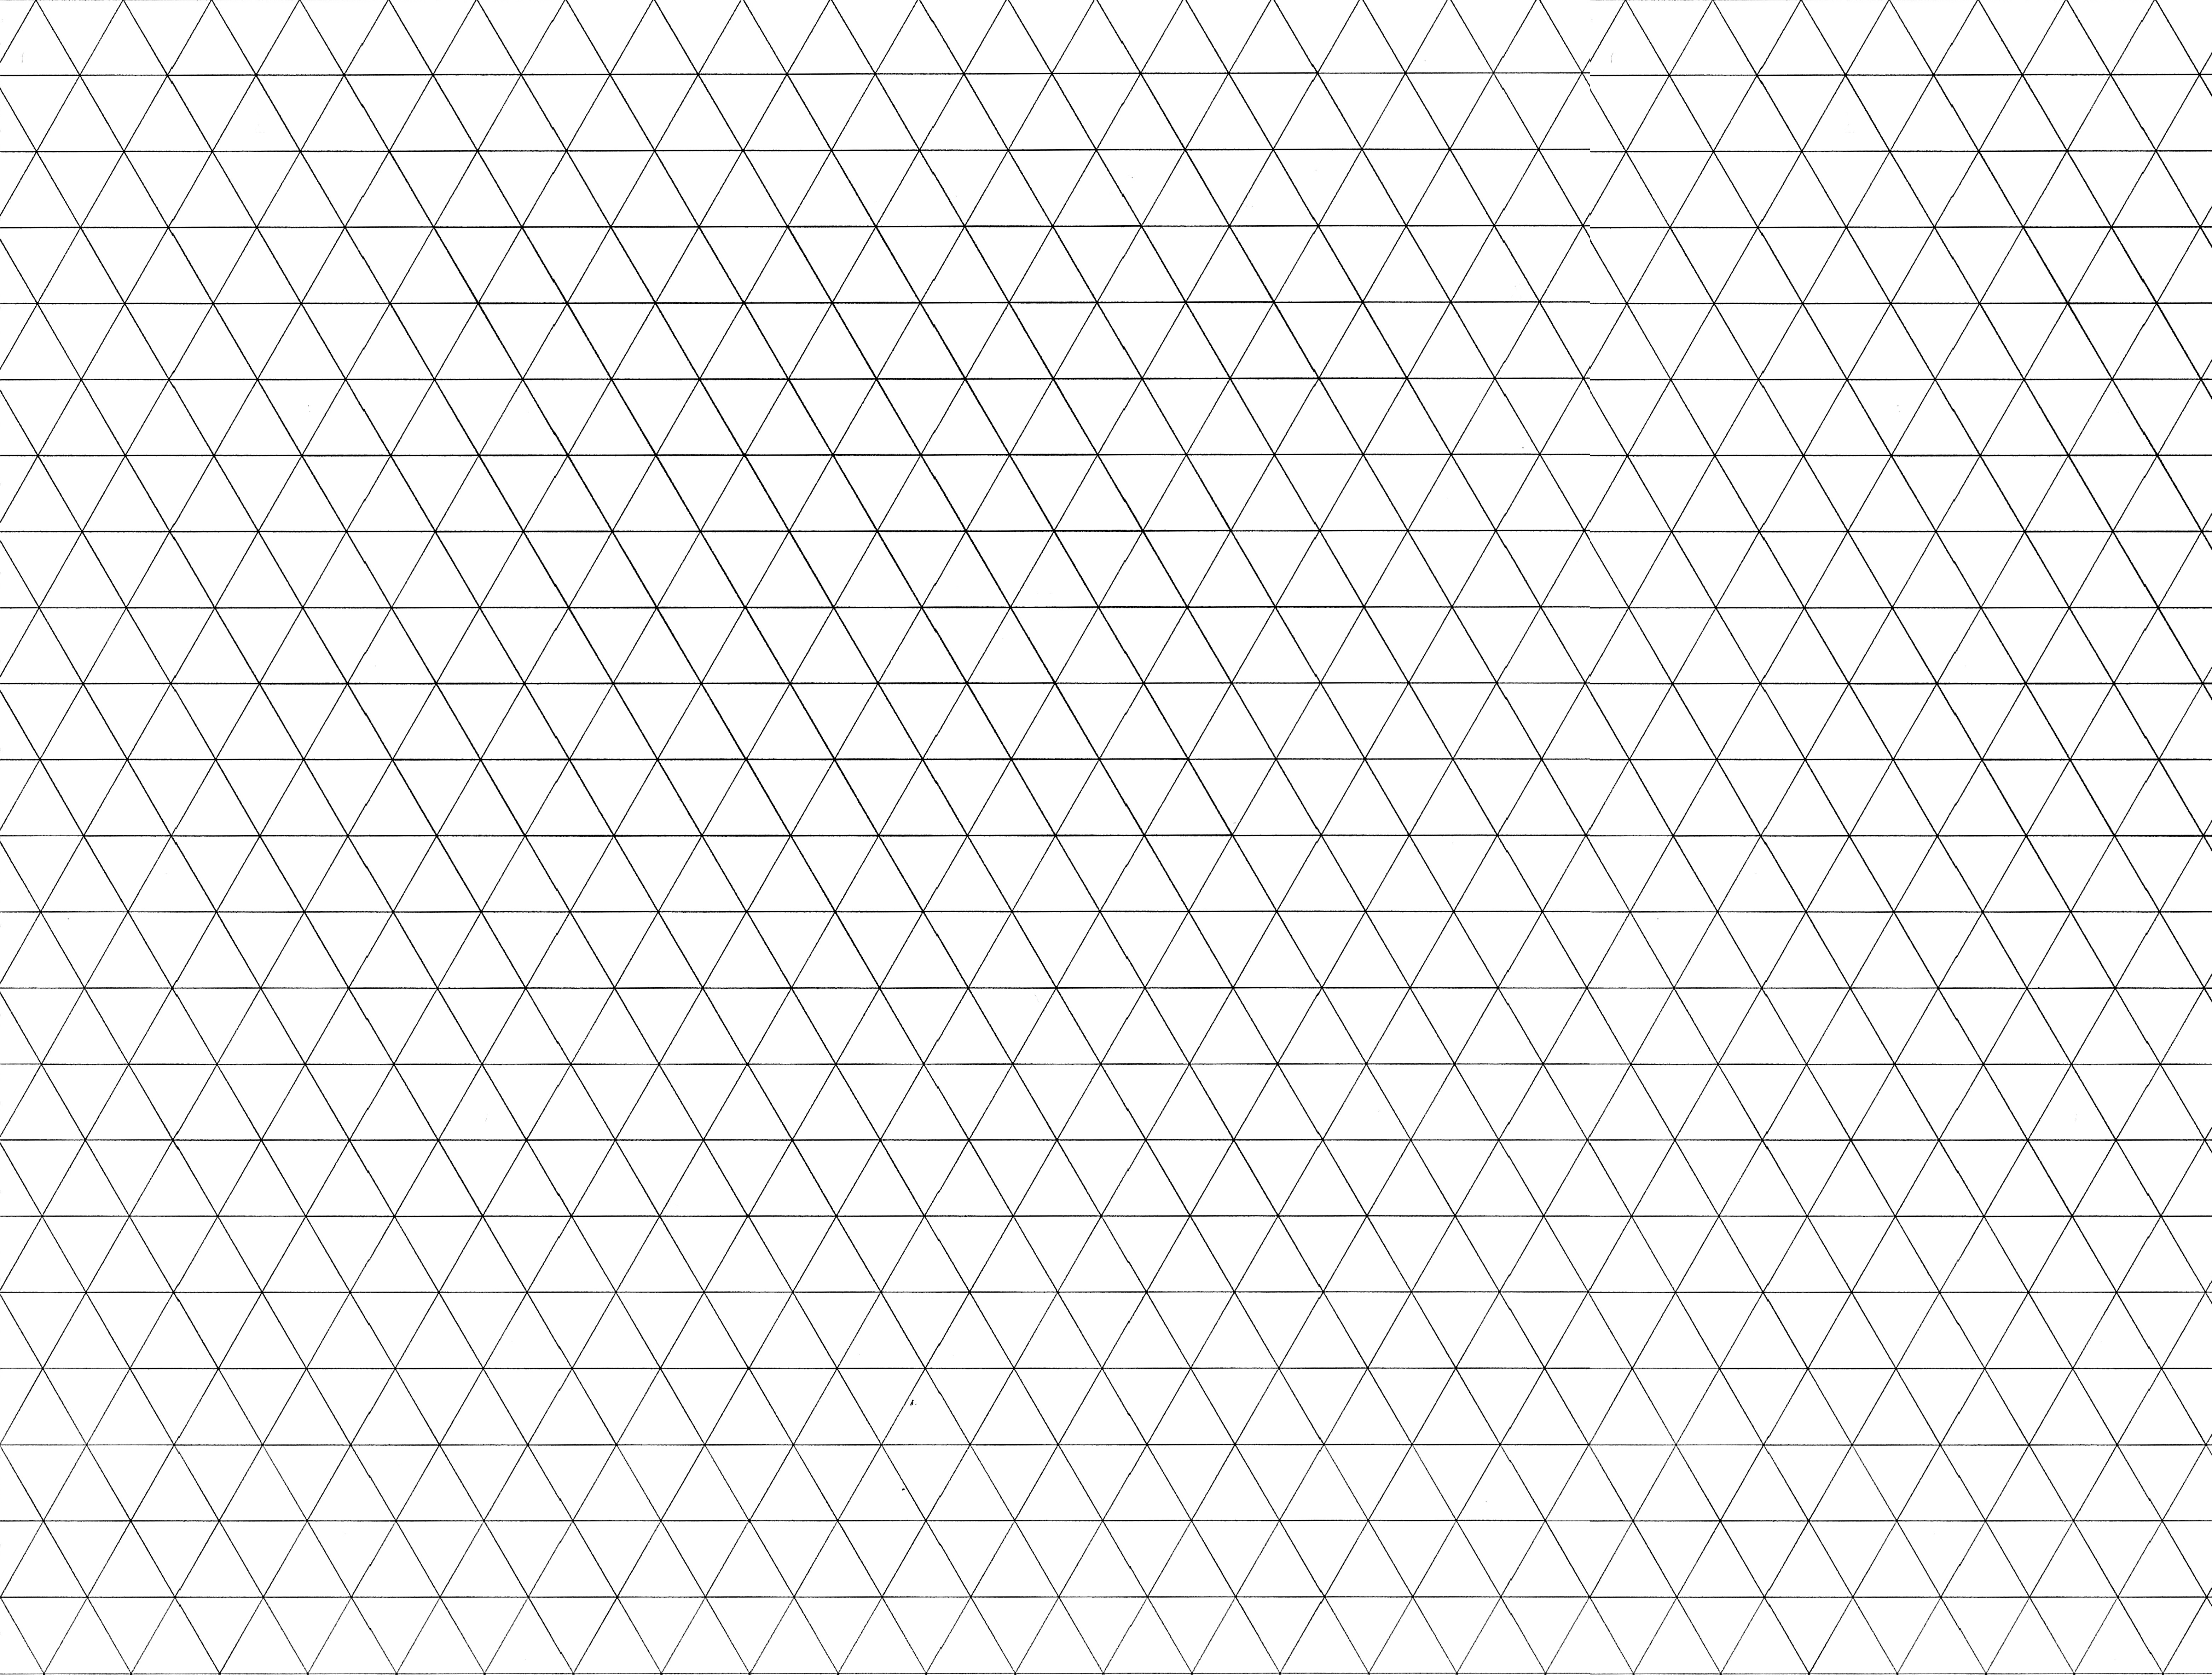 Download Isometric grids here: Horizontal / Vertical